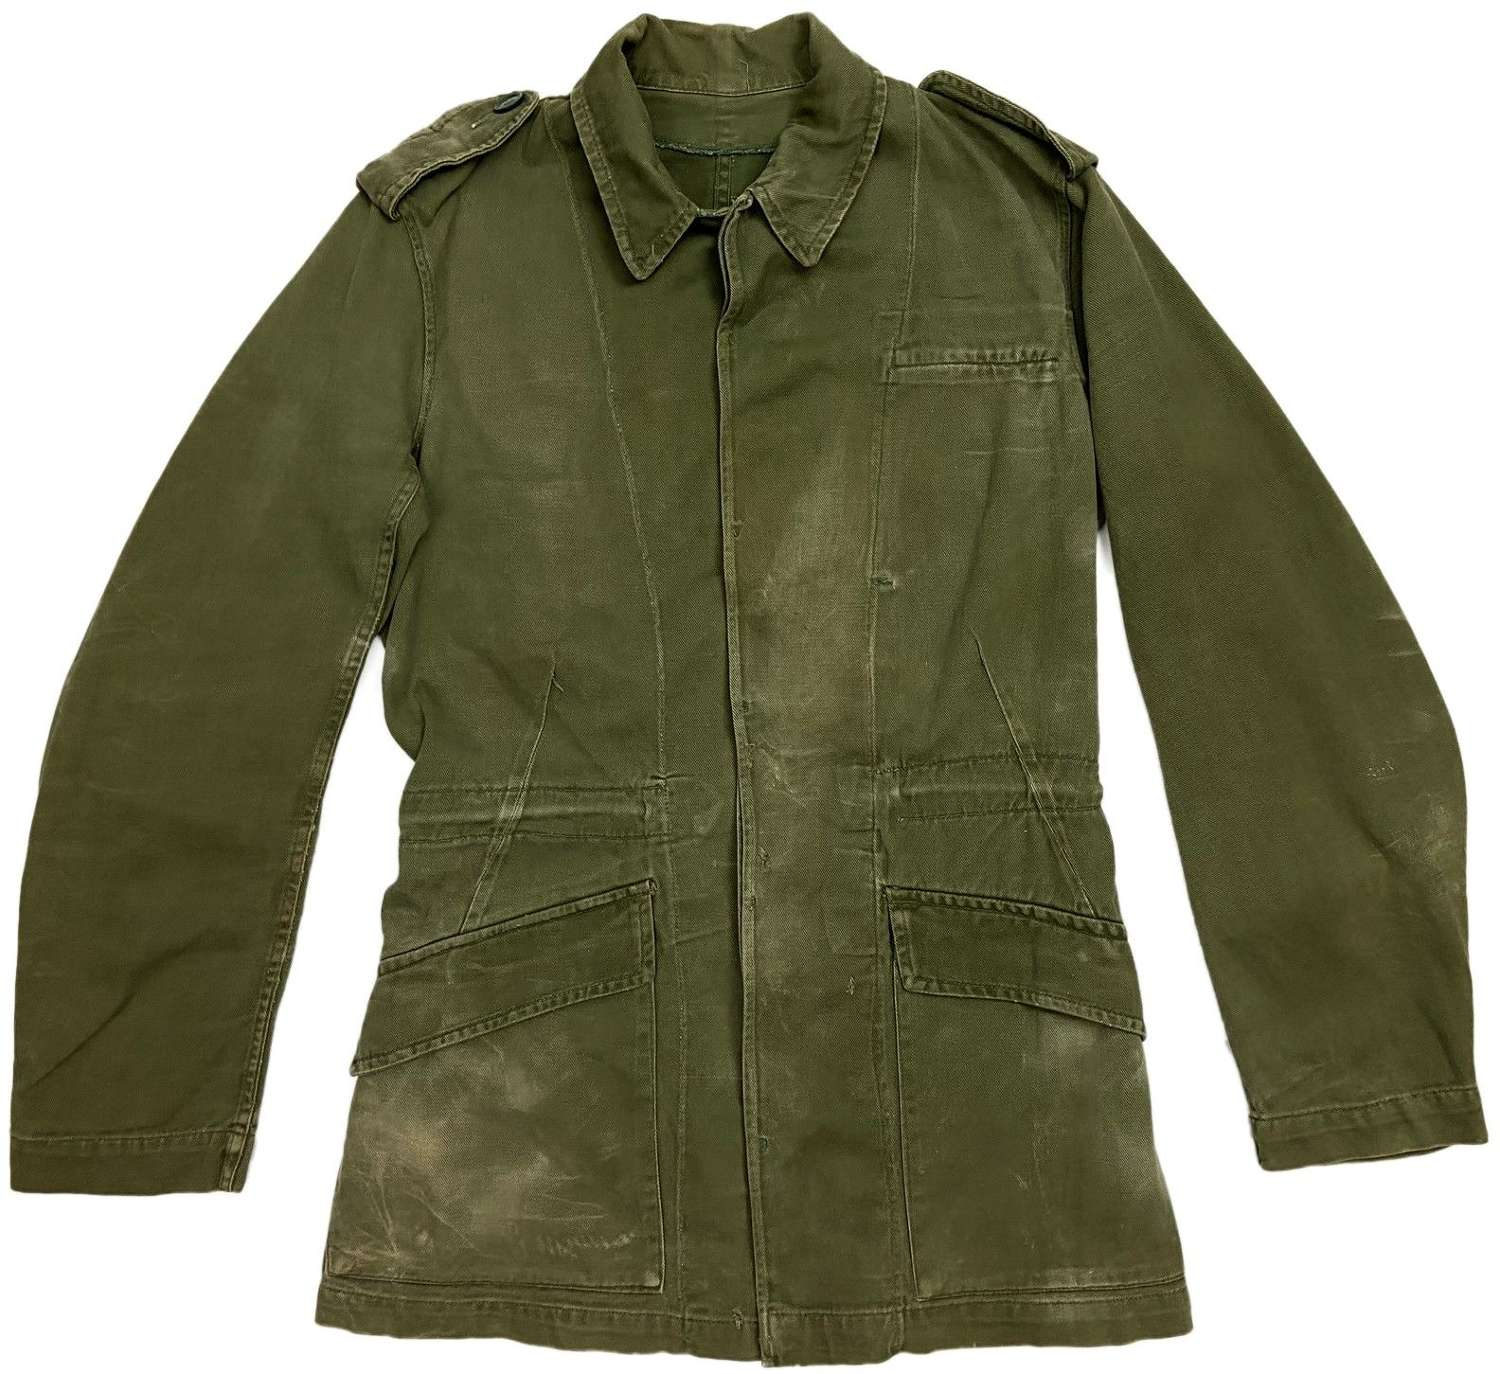 Original 1964 Dated 'Jacket, Overall, Green' - Size 7